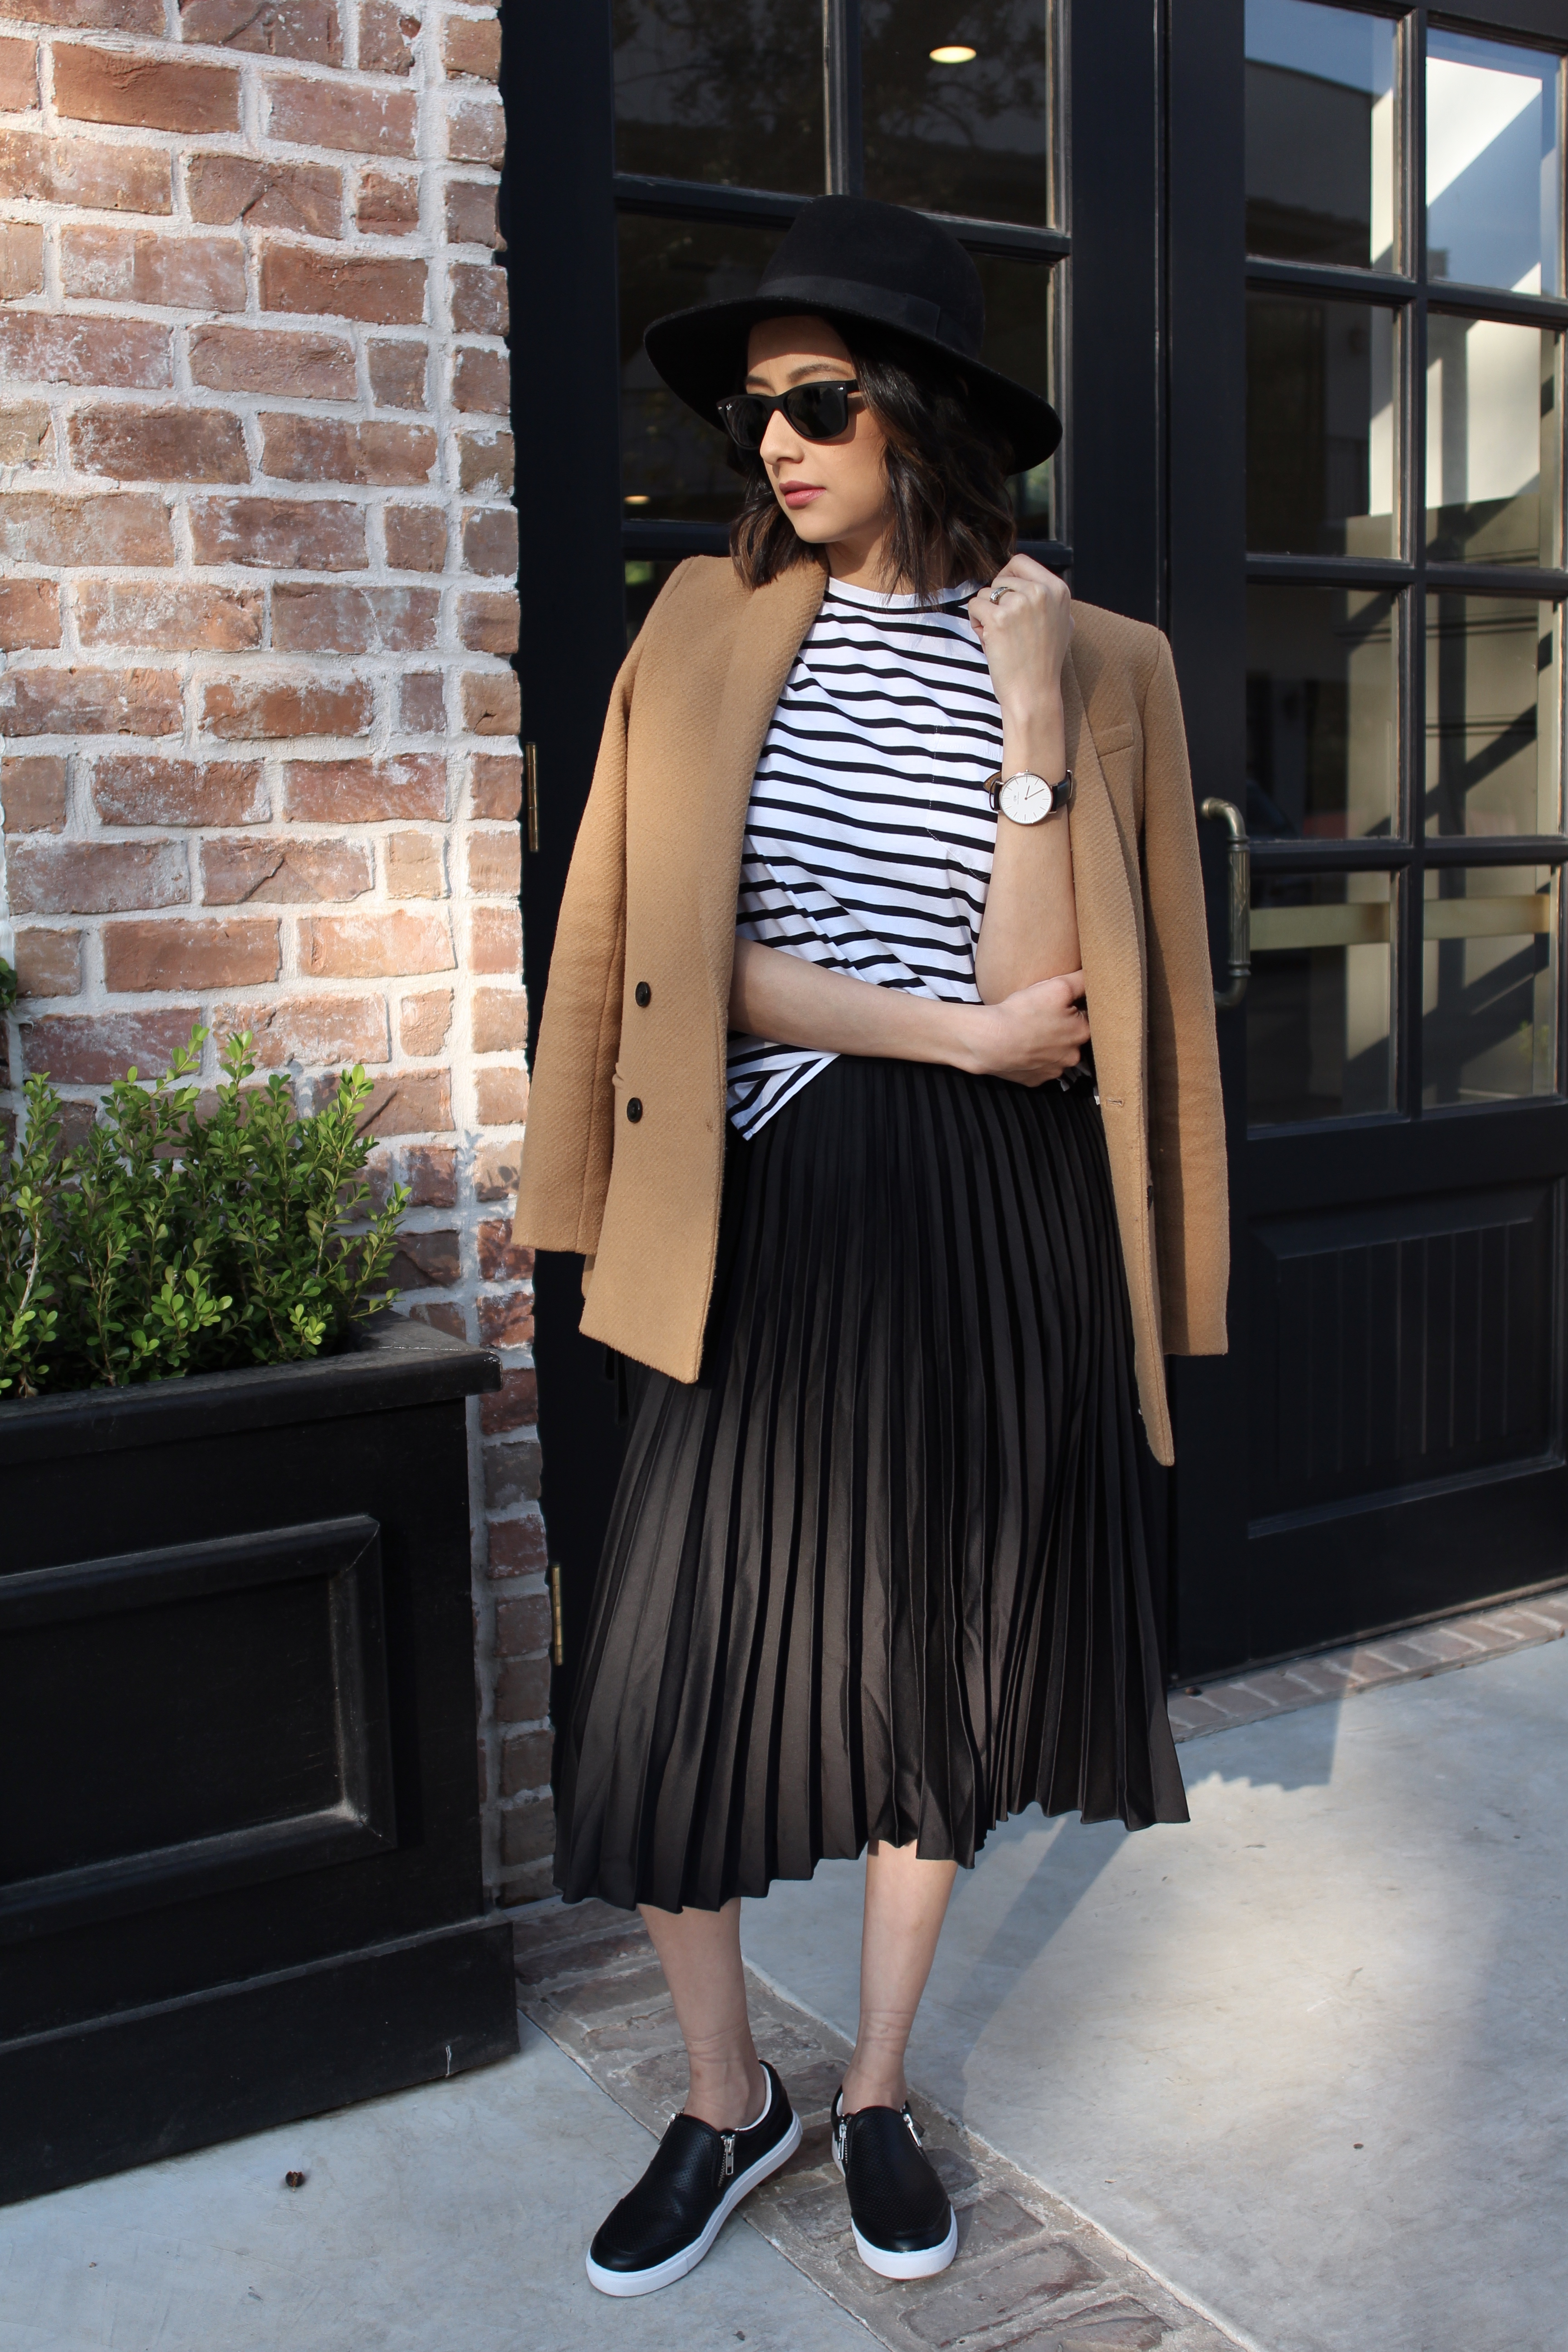 How to wear the off-duty look like a pro